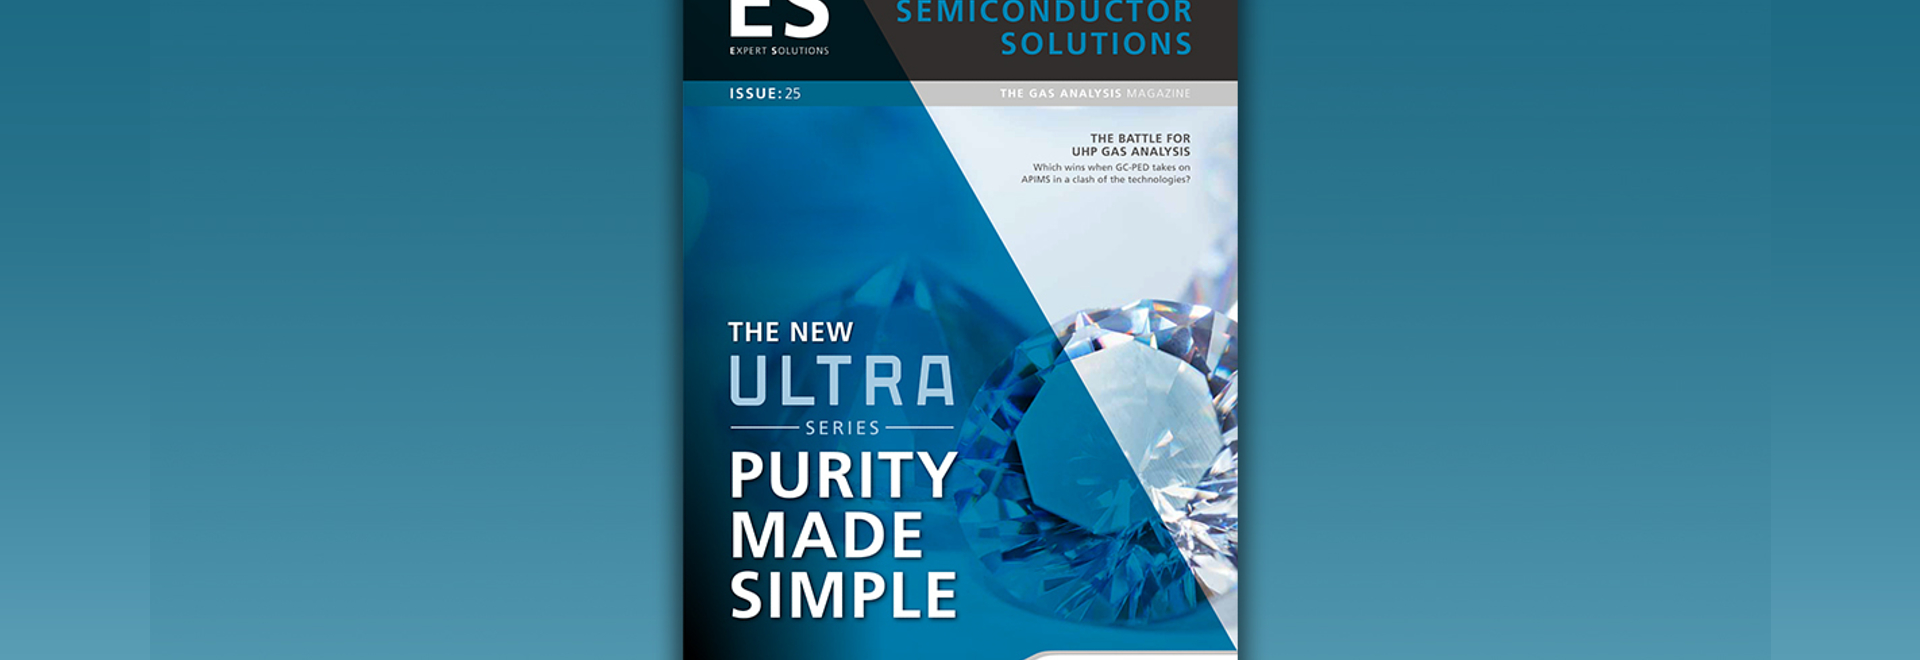 ES magazine highlights ULTRA solution for semiconductor industry